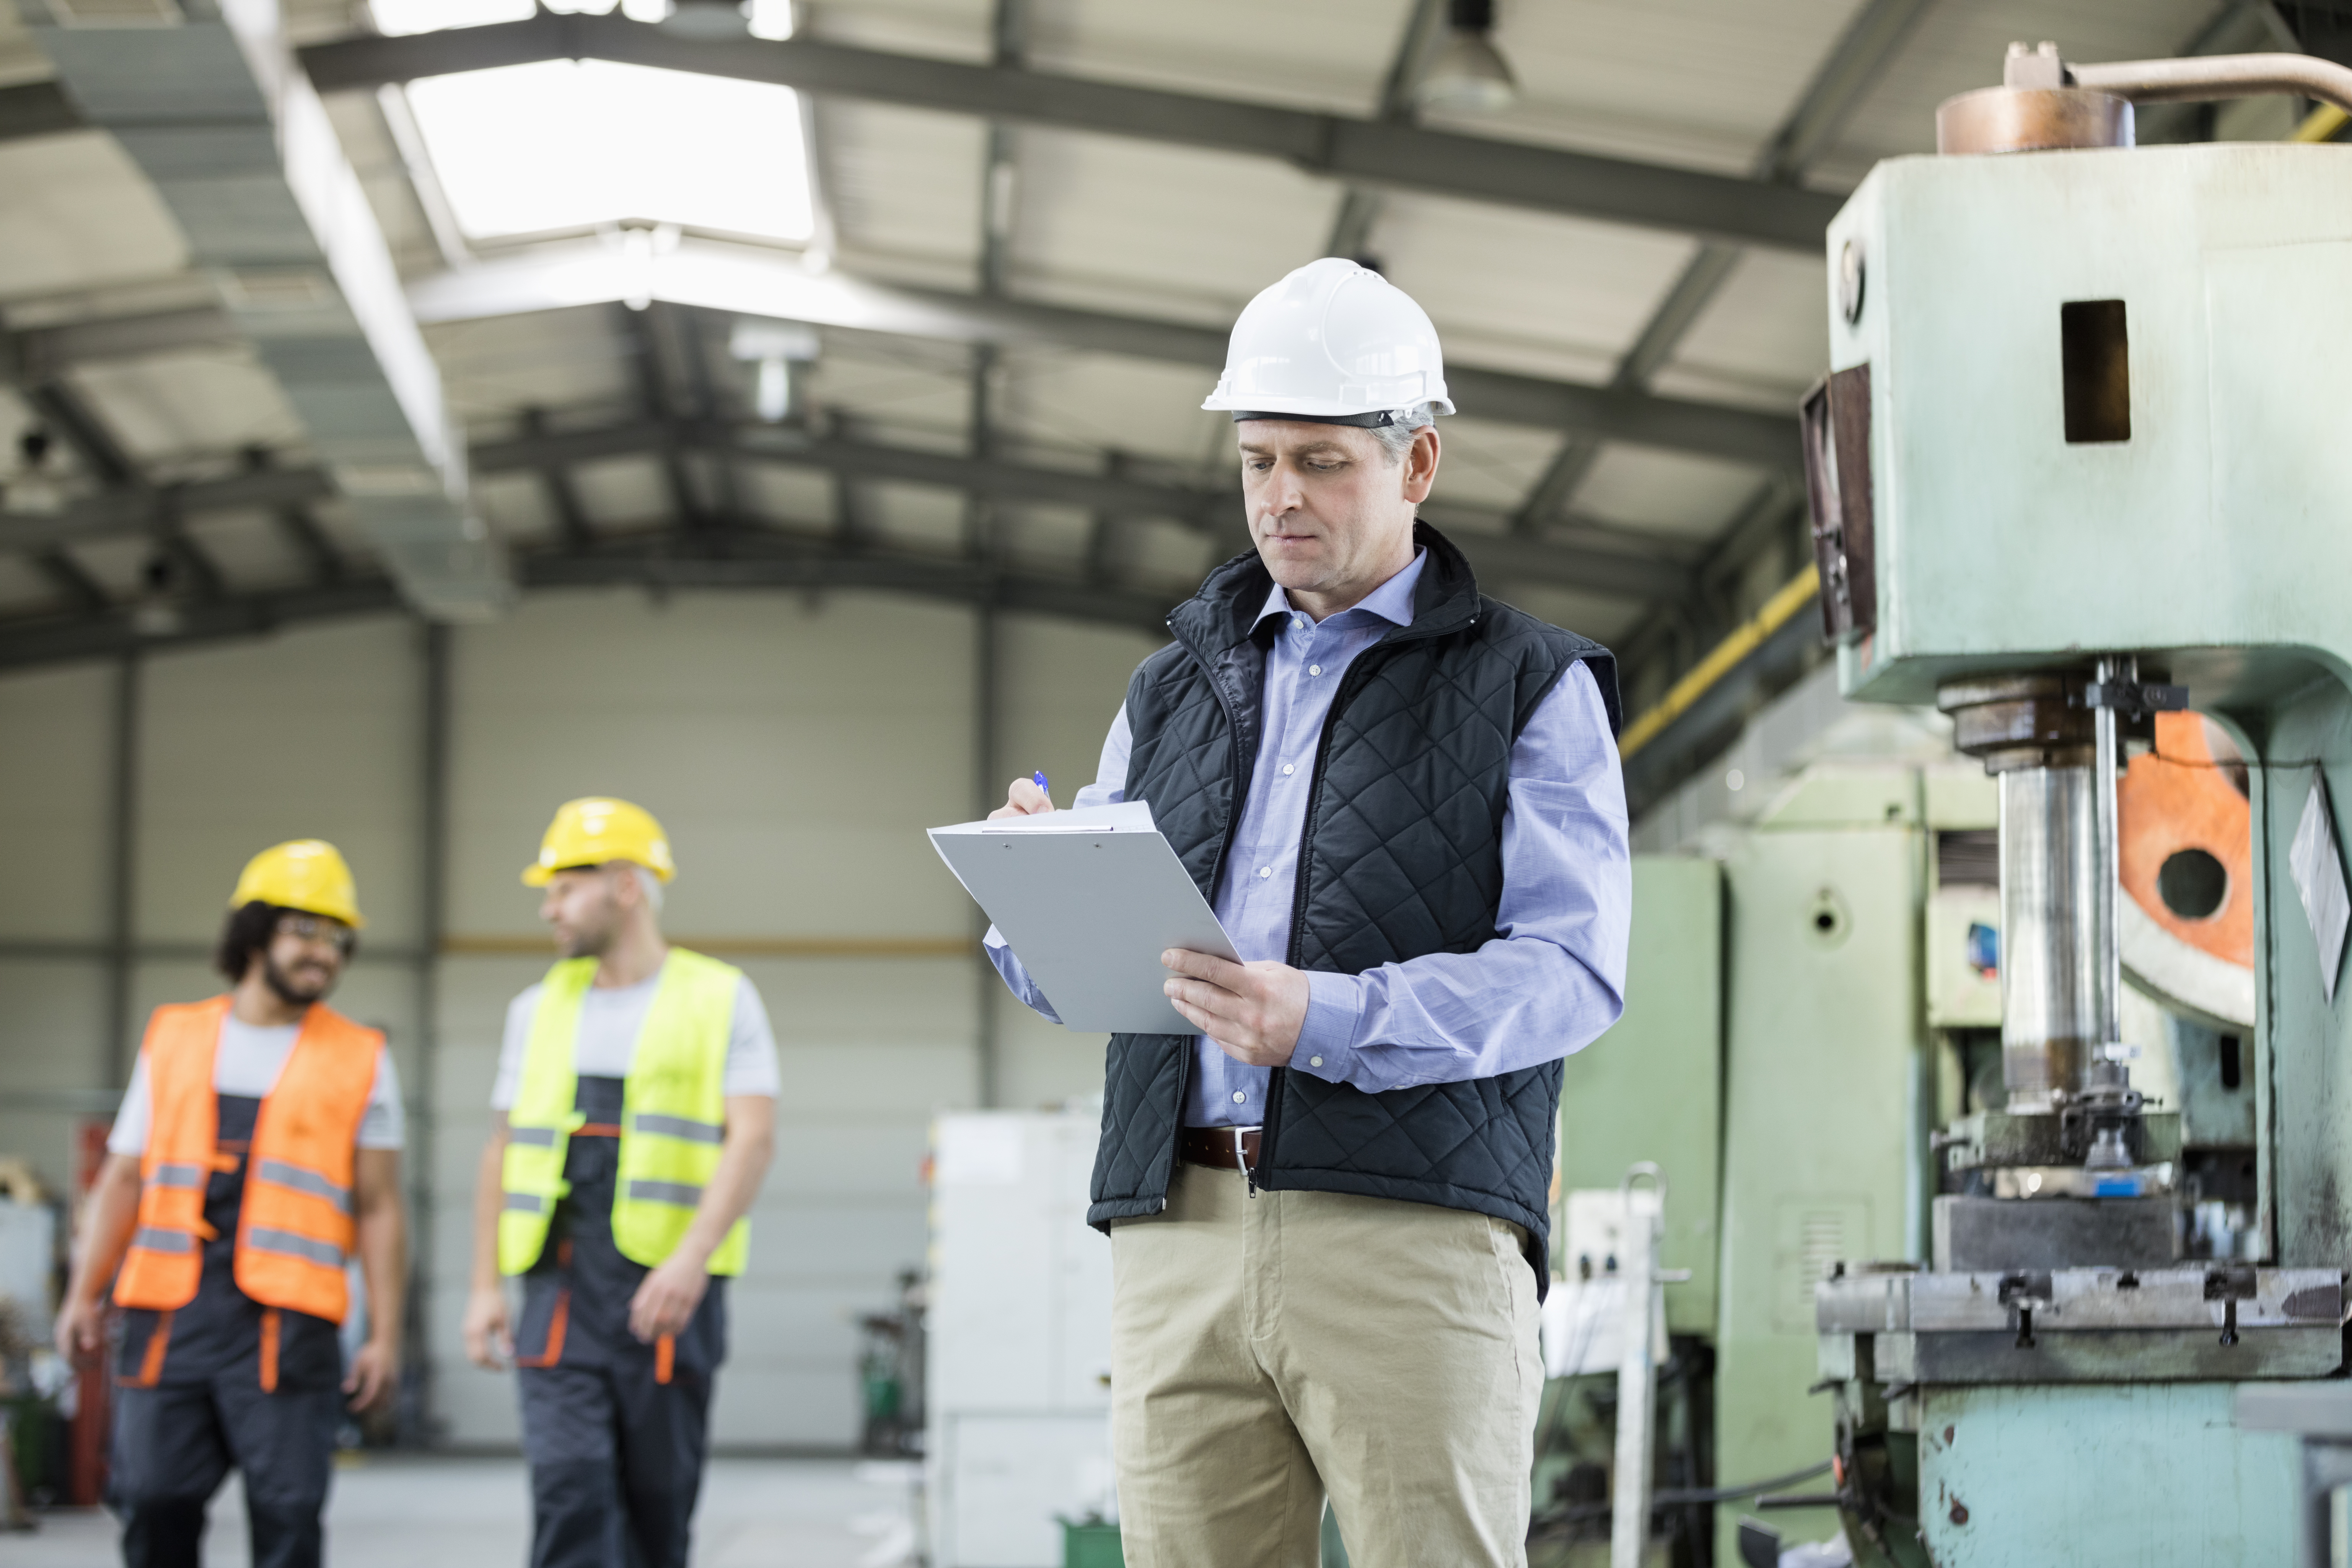 OSHA Inspections 101: What You Need to Know to Protect Your